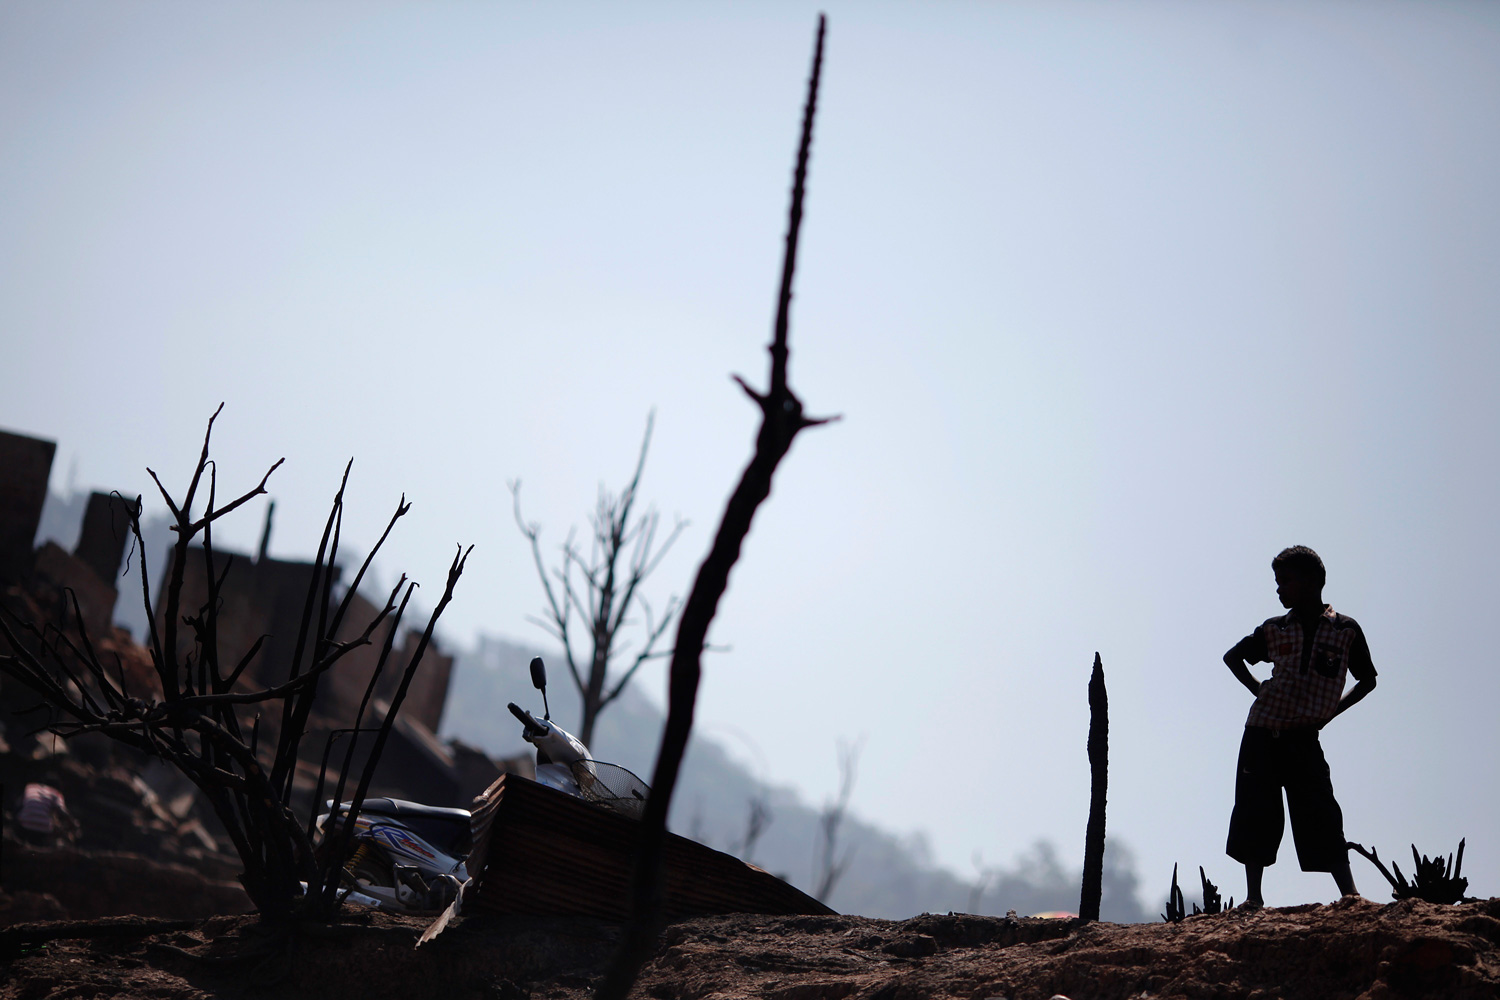 Feb. 24, 2012. A refugee boy from Myanmar stands in ruins of the Um-Piam refugee camp after a fire engulfed part of it near Mae Sot, Thailand.